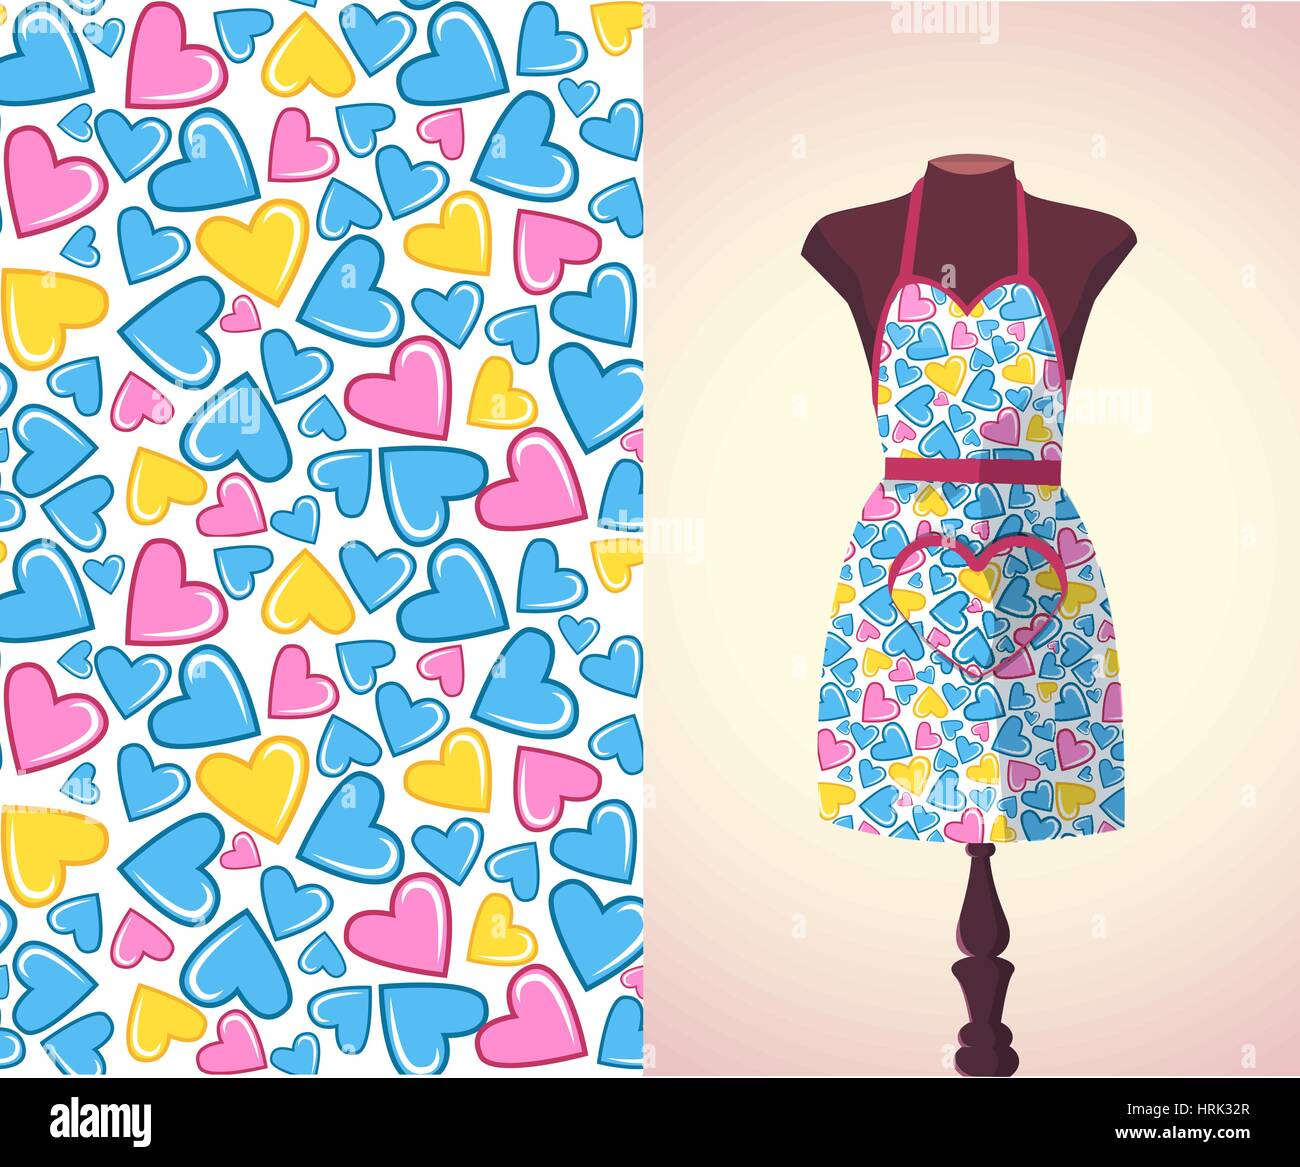 Fashion With Apron Lady Stock Photos & Fashion With Apron Lady Stock ...